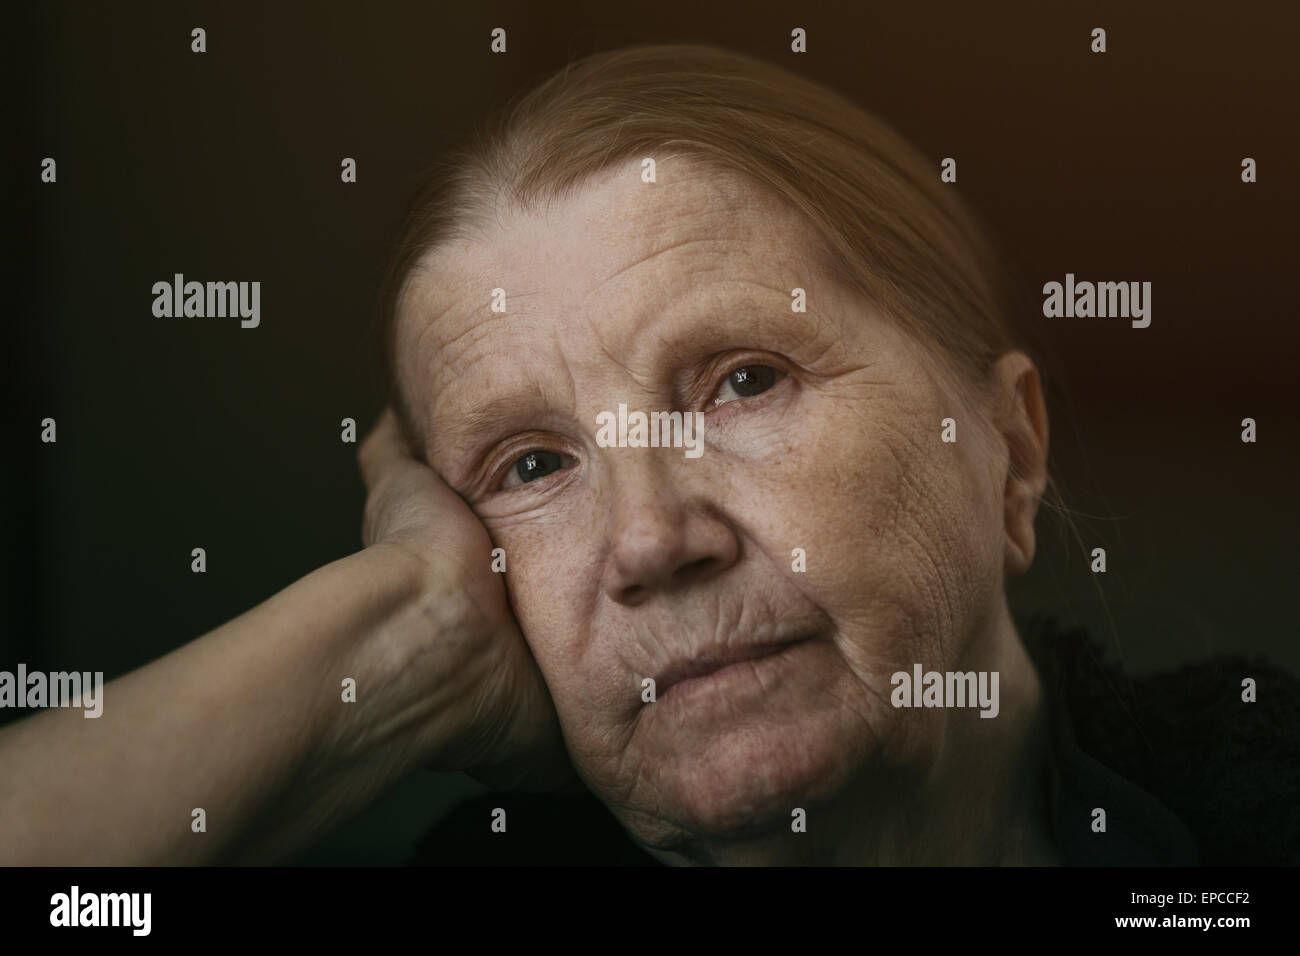 senior woman looking to the camera with sad look shalow DOF - Stock Image